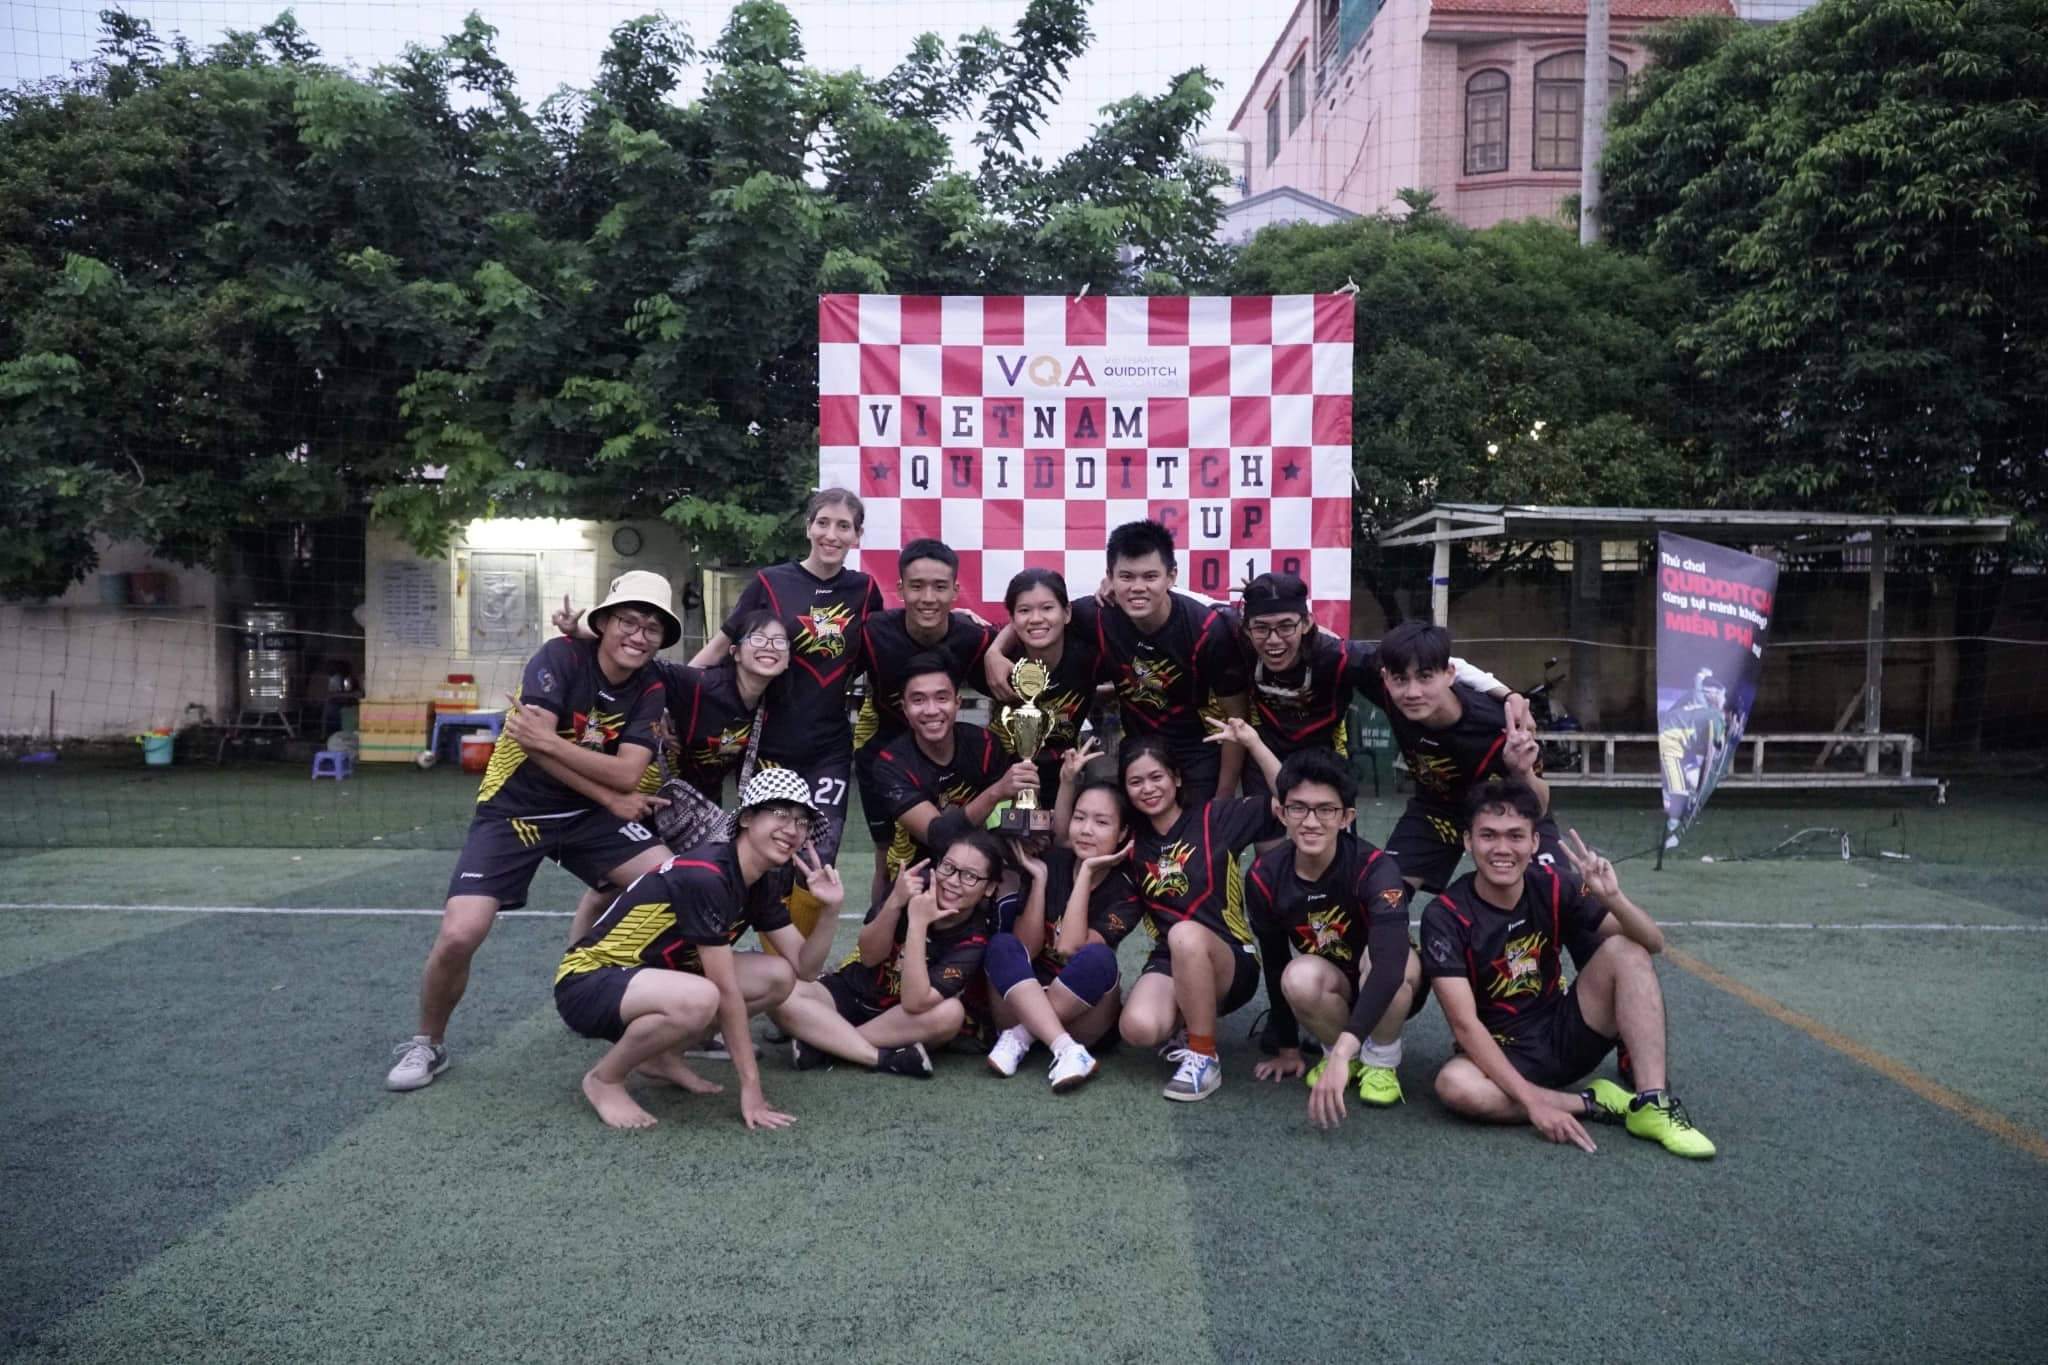 The winning team poses for a photo at the maiden Vietnam Quidditch Cup organized by the Vietnam Quidditch Association  in Tan Binh District, Ho Chi Minh City, November 10, 2019 in this provided photo